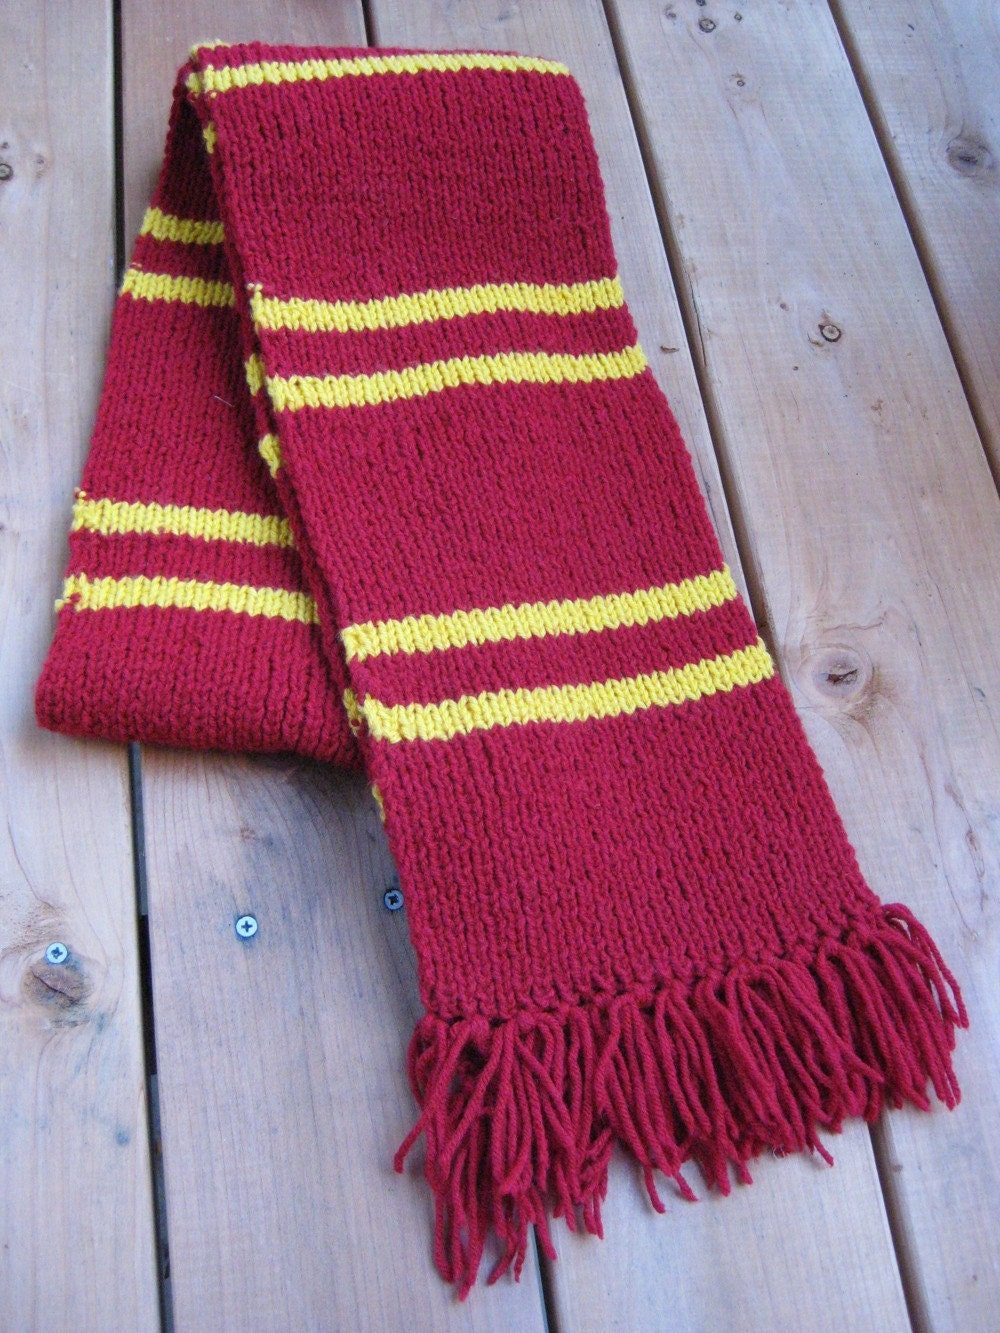 Knitting Pattern Gryffindor Scarf : Harry Potter Gryffindor scarf